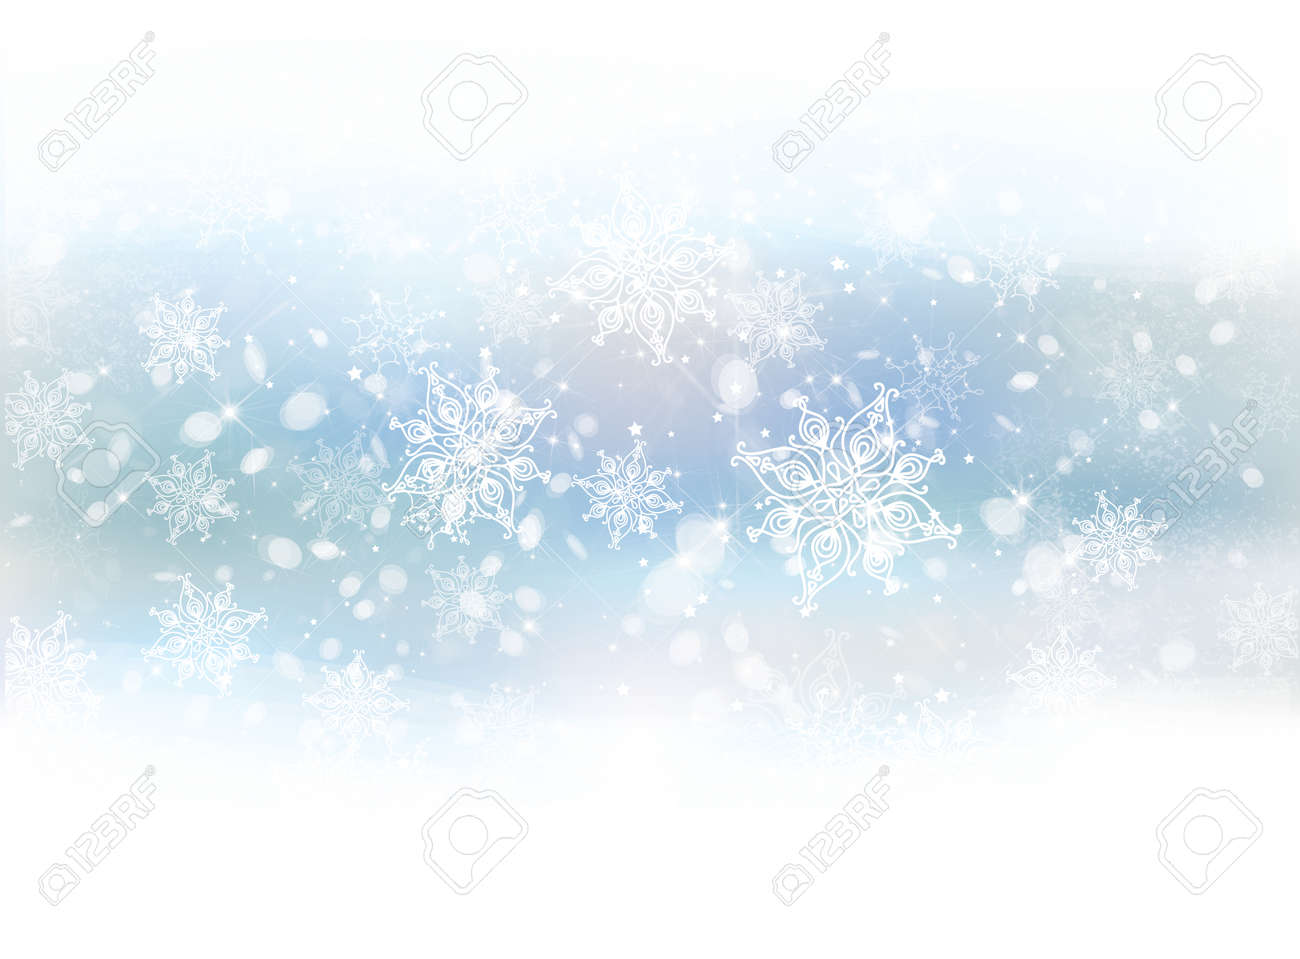 Vector winter snowflakes background. - 38684934